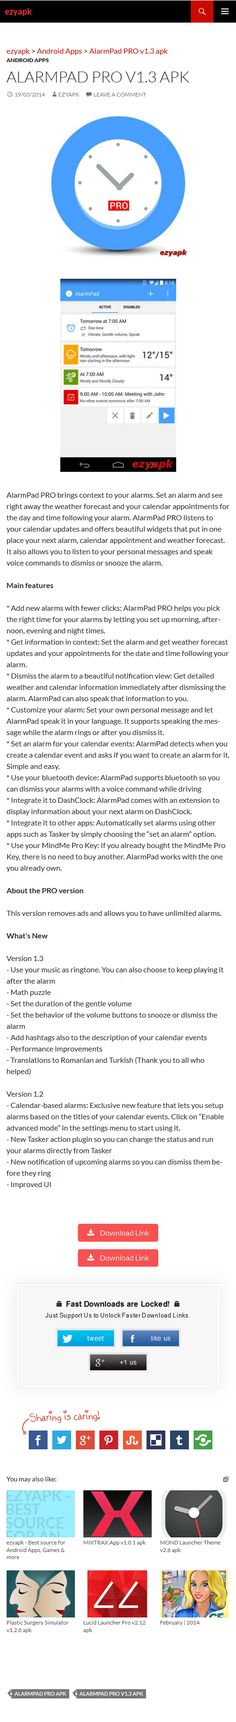 Android Apps AlarmPad PRO v1.3 apk - ezyapk AlarmPad PRO brings context to your alarms. Set an alarm, see the weather forecast and your appointments. AlarmPad PRO listens to your calendar updates. http://www.ezyapk.com/android-apps/alarmpad-pro-v1-3-apk/